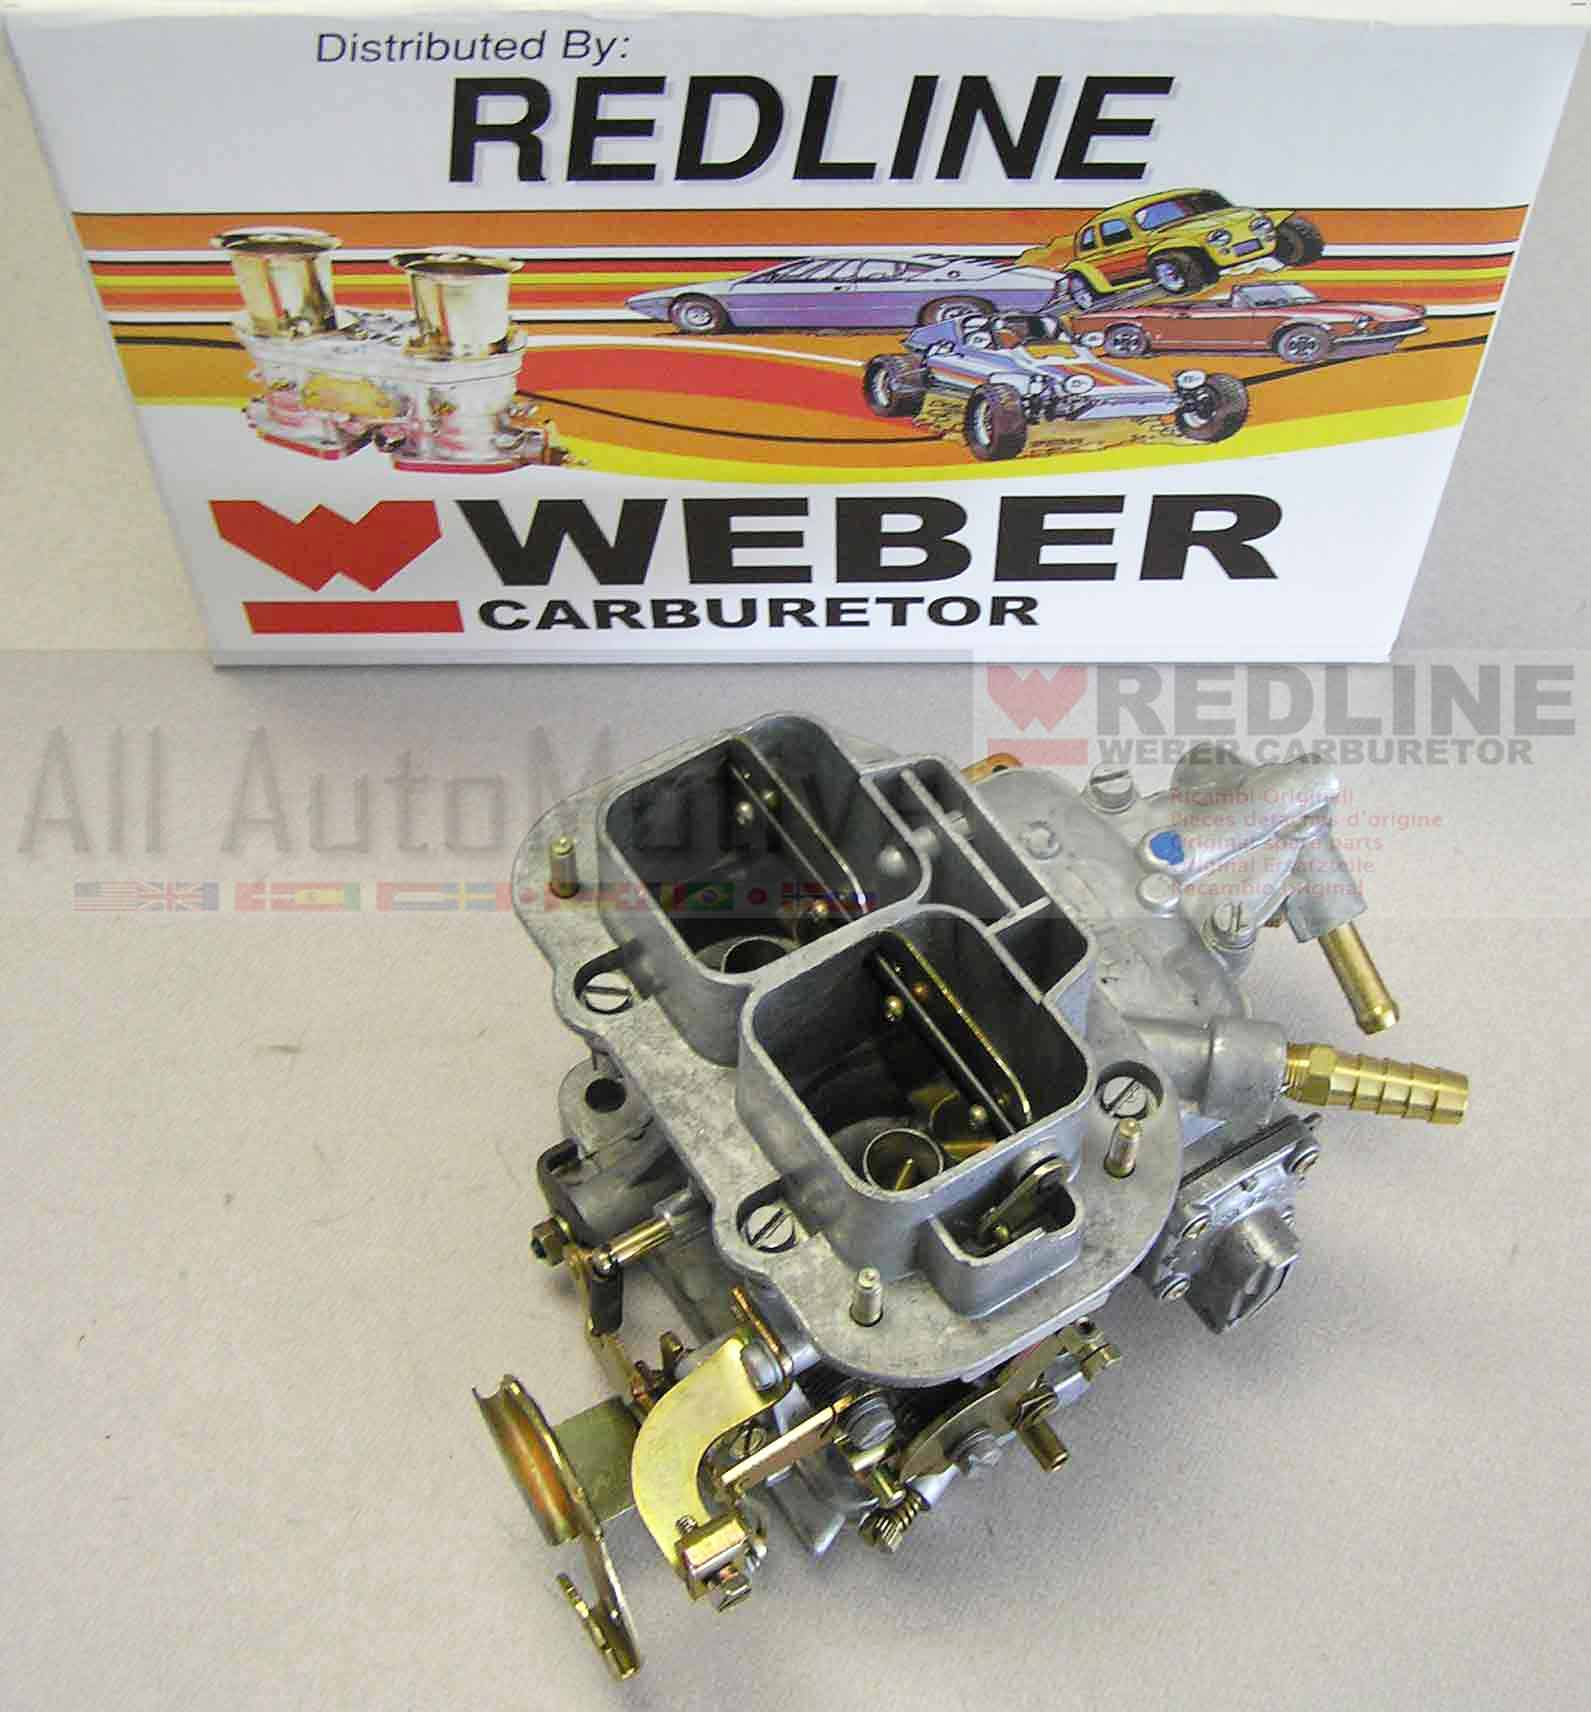 Isuzu Pickup Trooper 23 Weber Carburetor Conversion Kit W Manual 1988 Truck Engine Wiring Harness Choke Carb Ebay